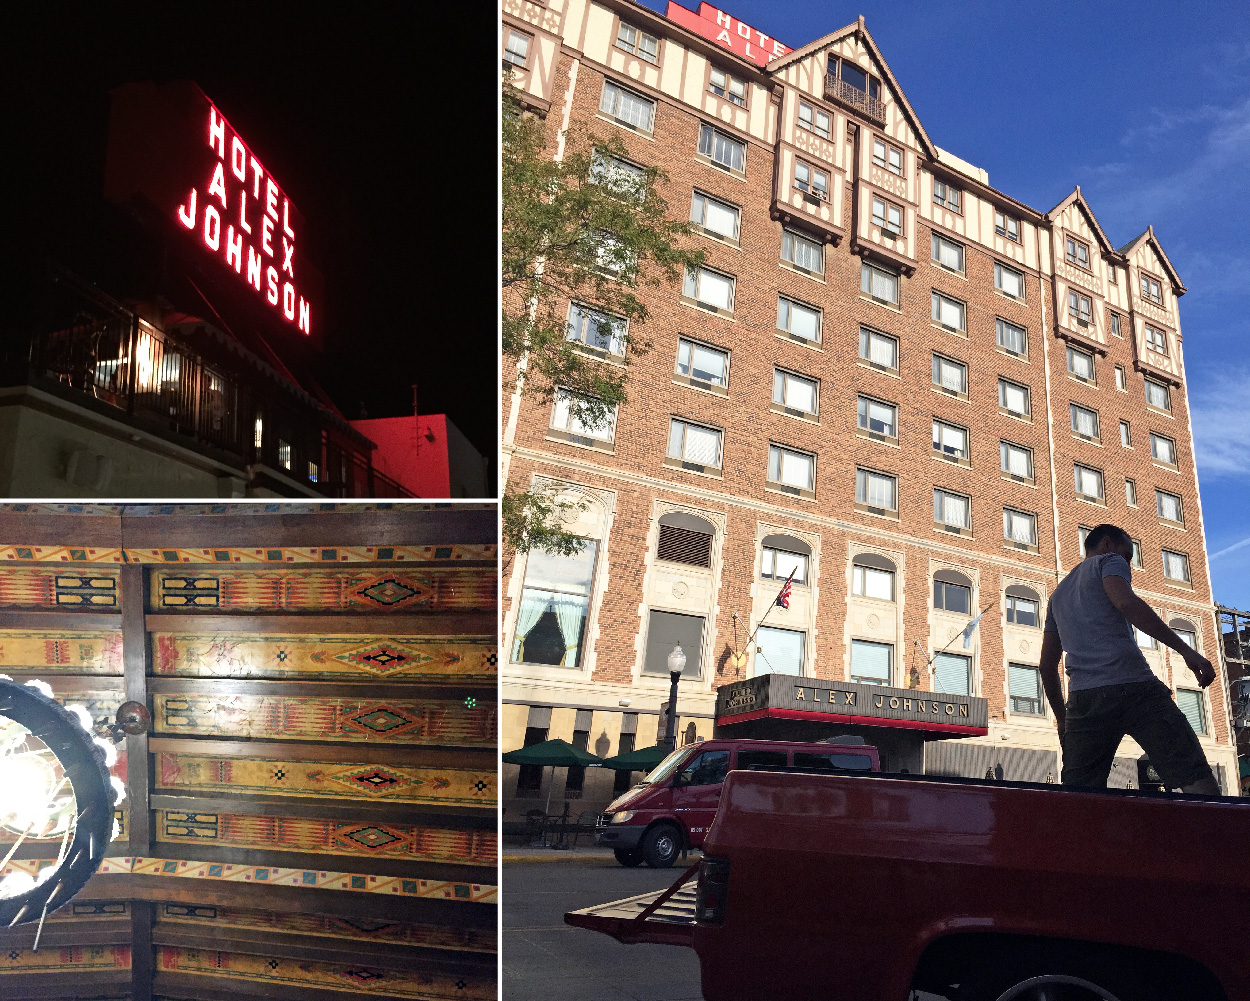 """The historic """"Hotel Alex Johnson"""" sign lit up at night, the patterned ceiling, and Alex packing up the truck before hitting the road for Wyoming."""